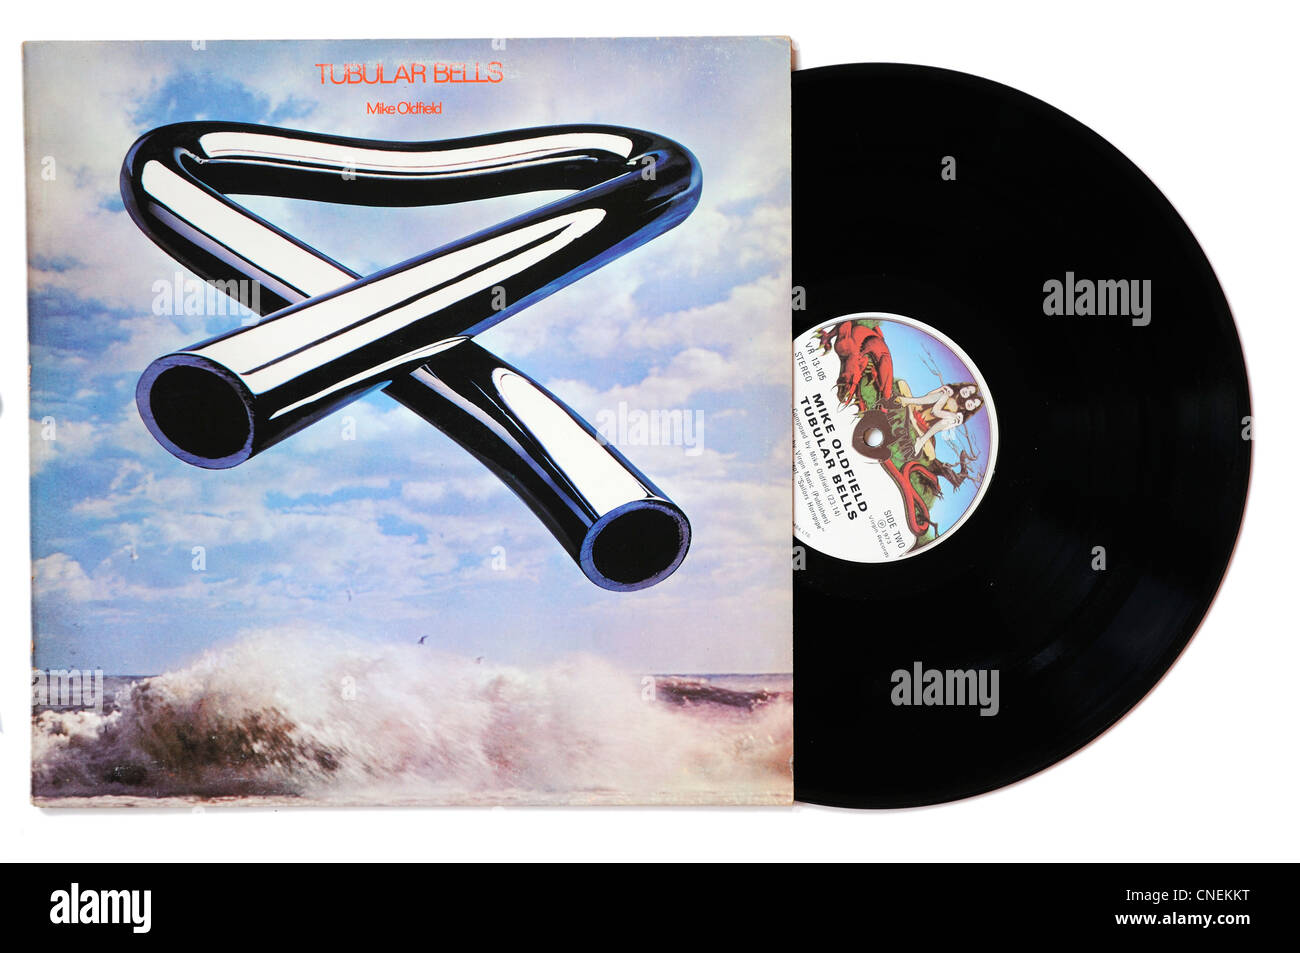 Mike Oldfield Tubular Bells album - Stock Image